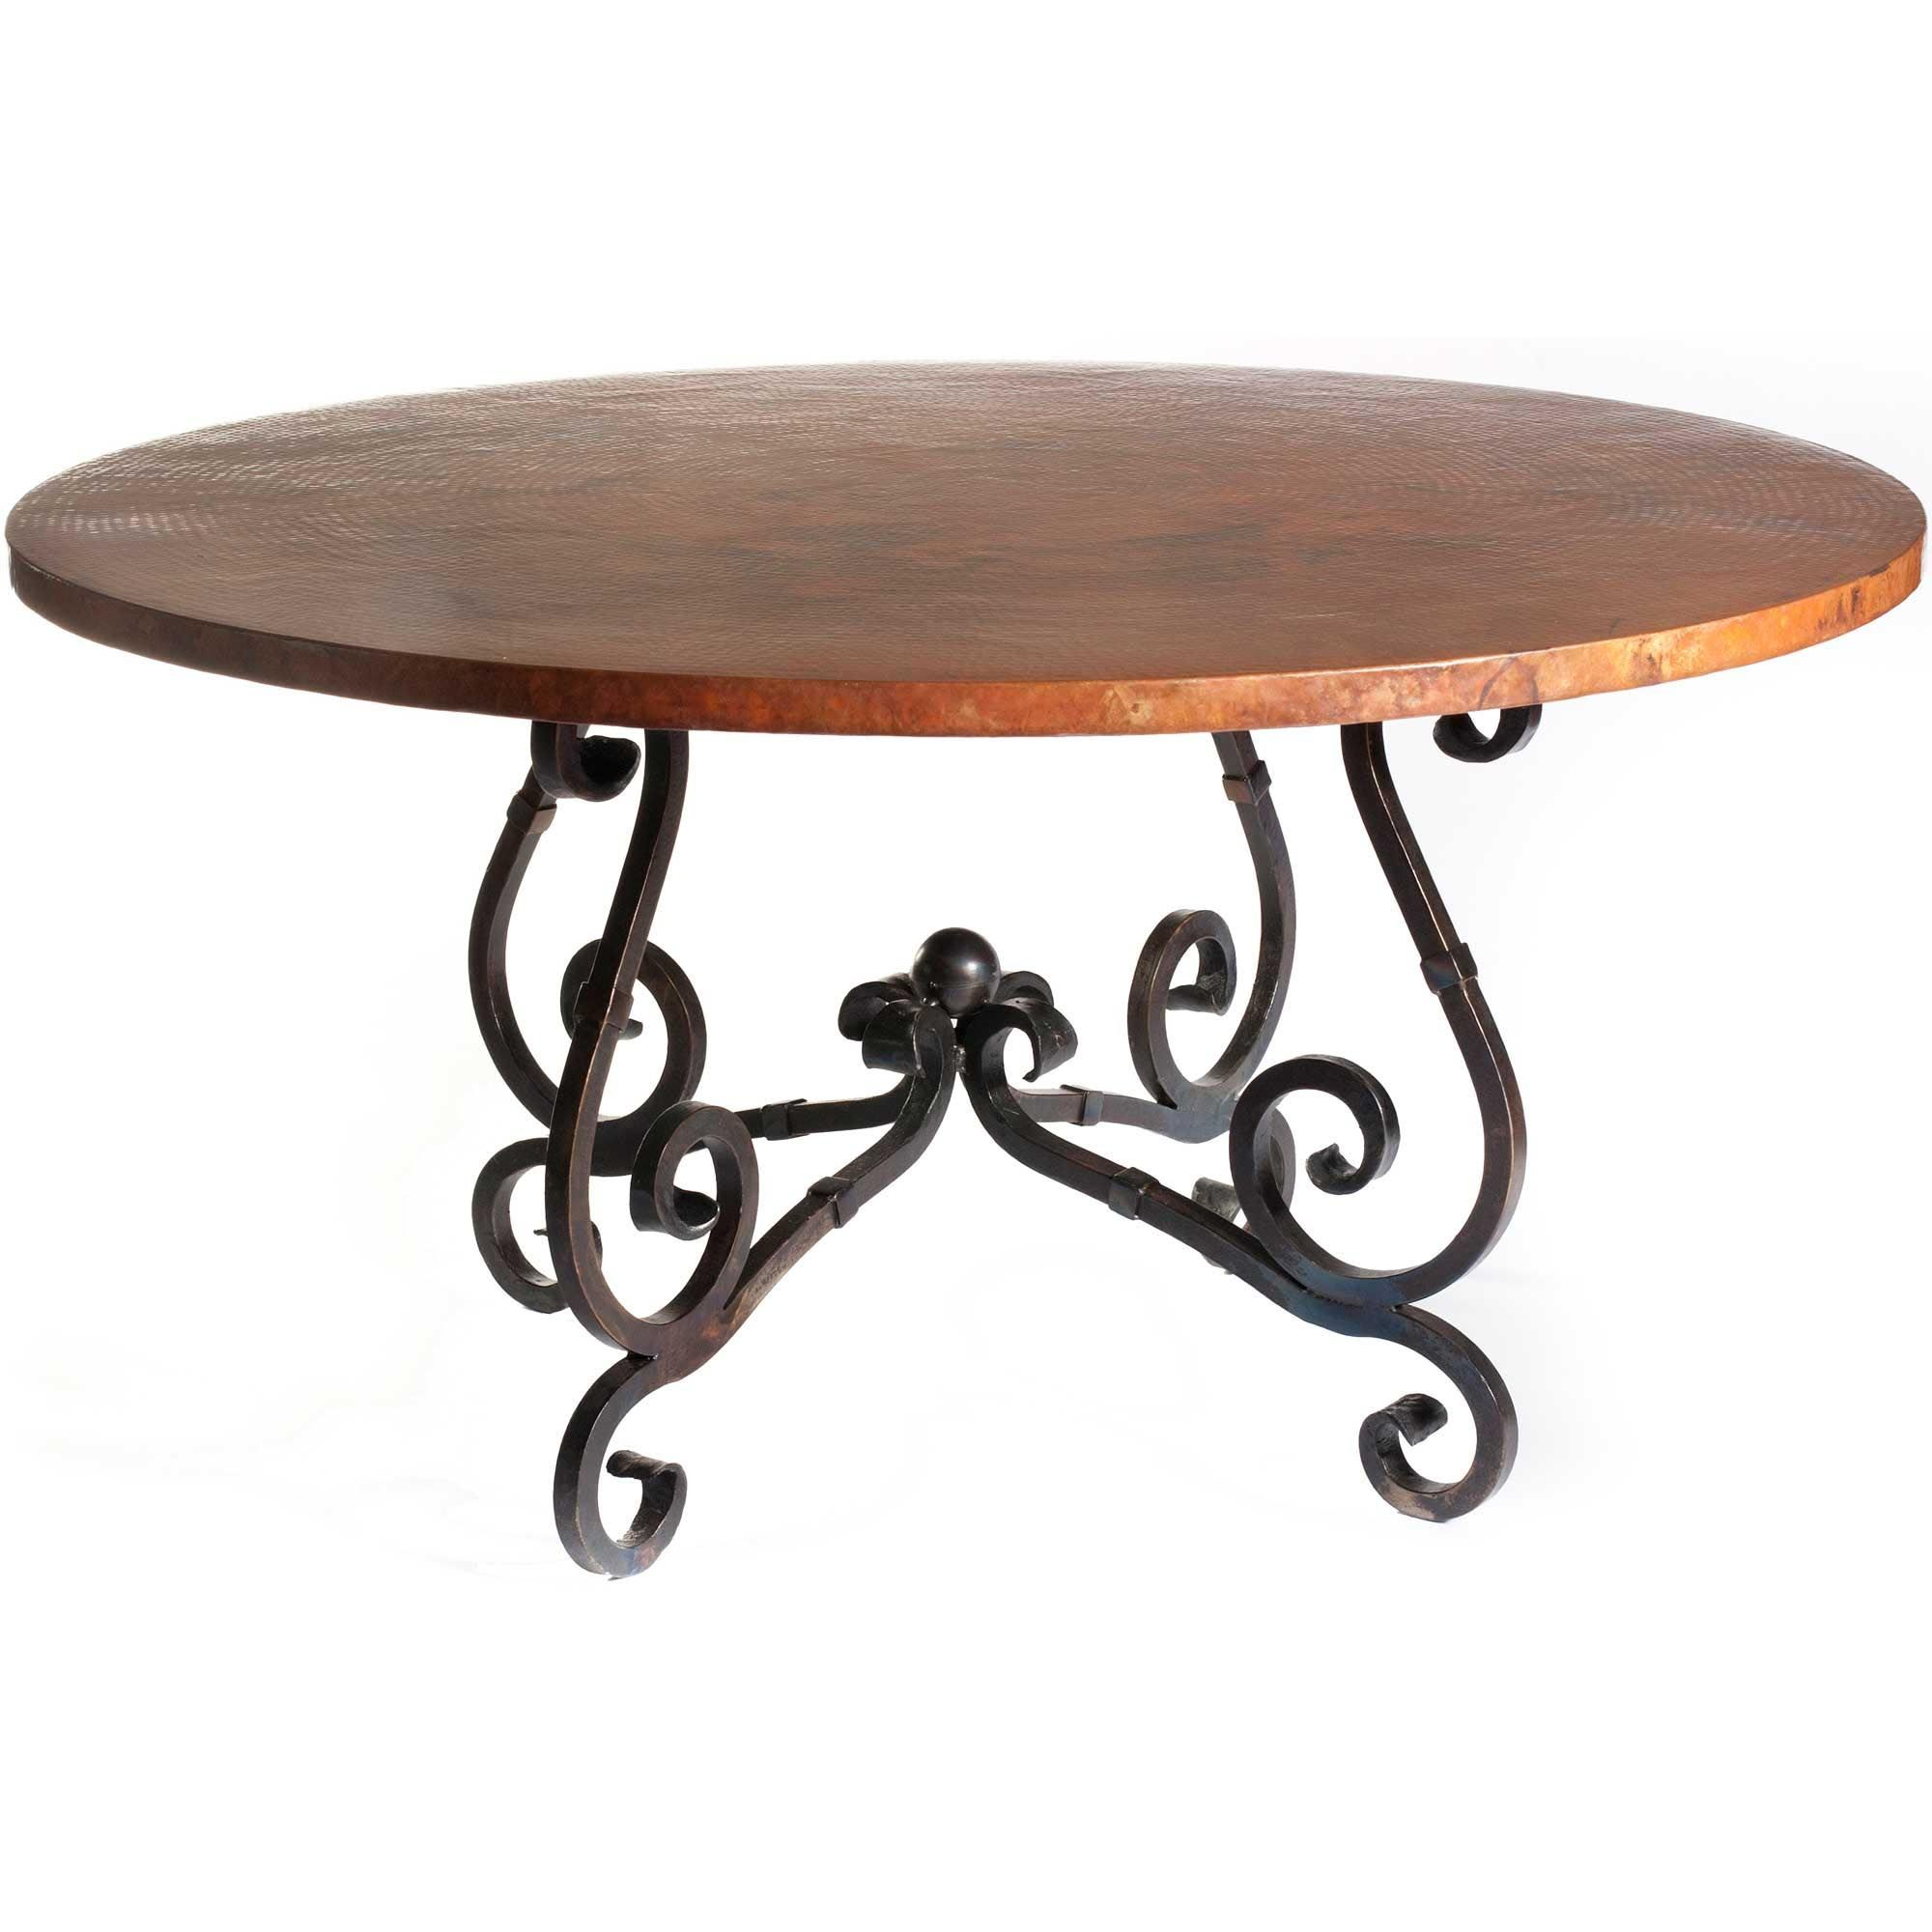 Round hammered copper coffee table coffee tables pinterest round hammered copper coffee table geotapseo Gallery